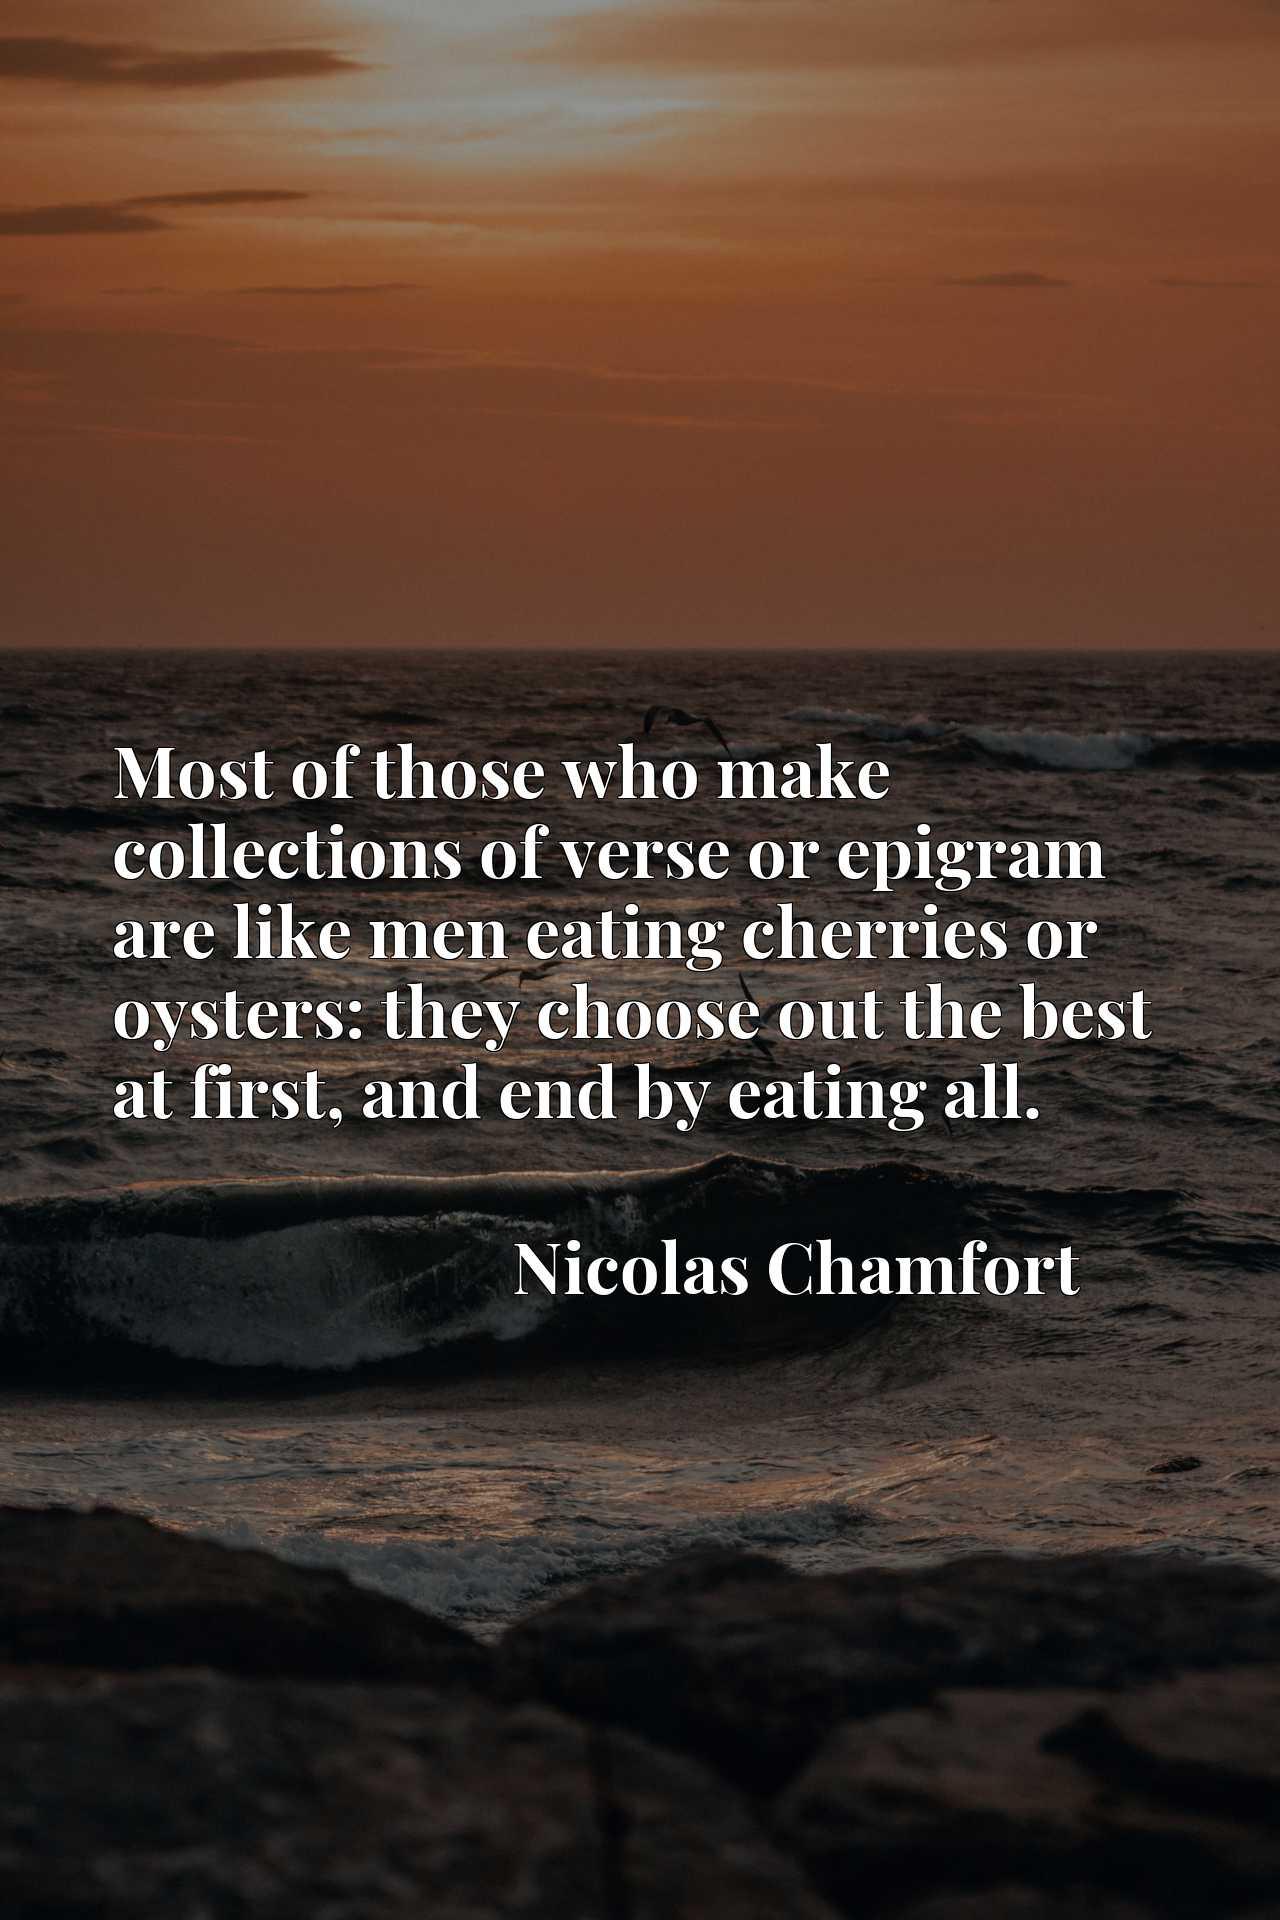 Most of those who make collections of verse or epigram are like men eating cherries or oysters: they choose out the best at first, and end by eating all.